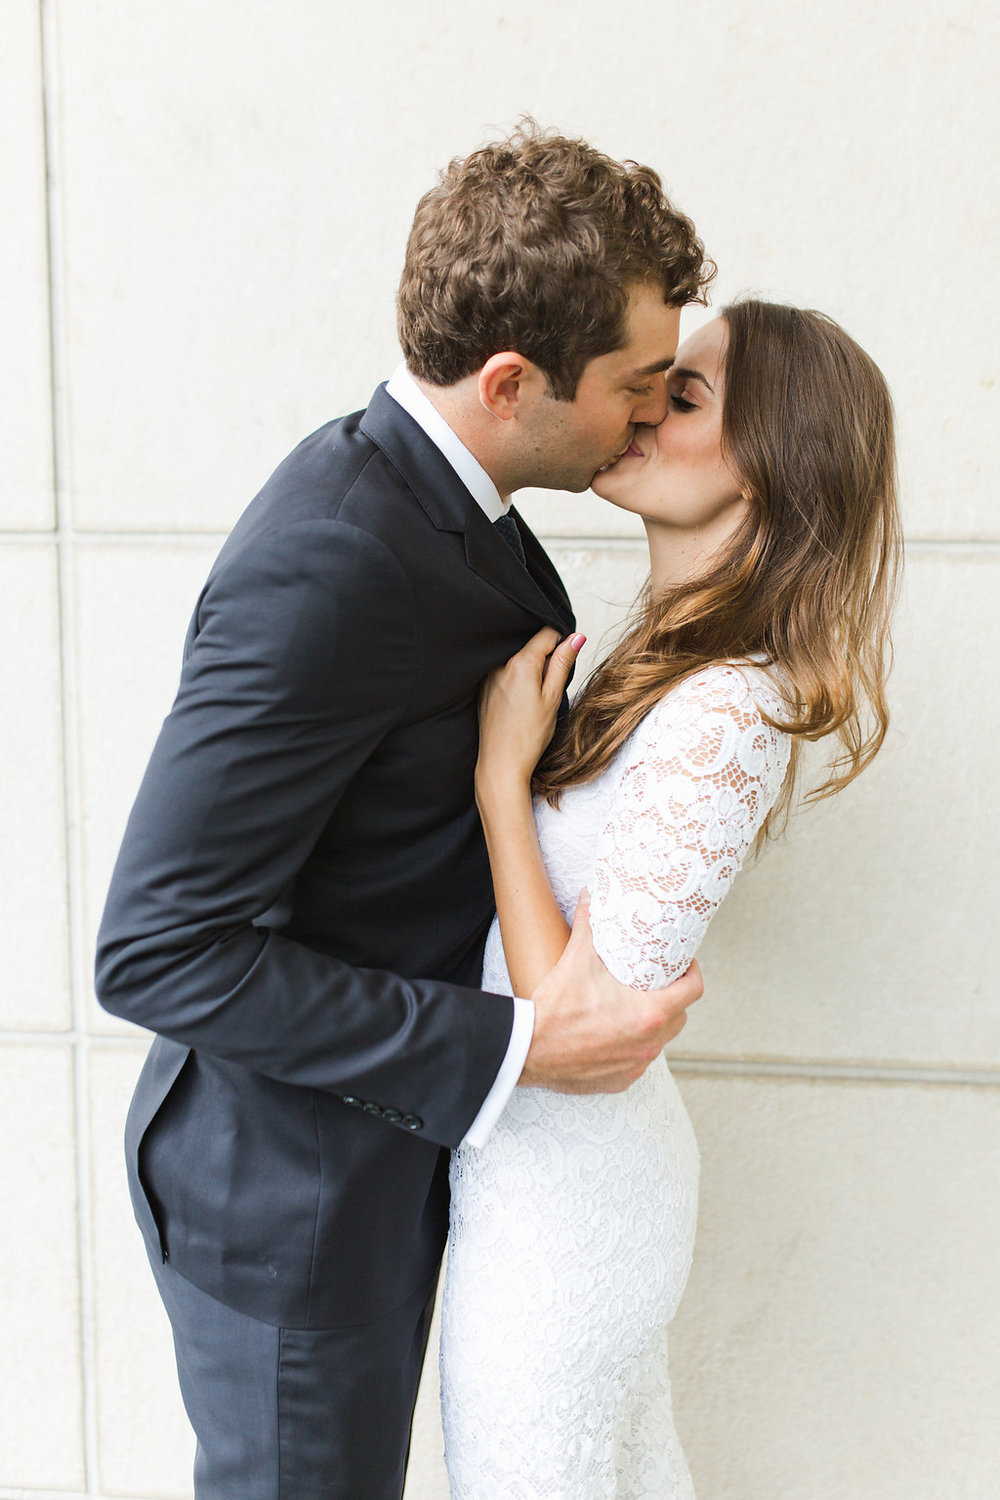 Seattle Courthouse Wedding | Seattle Municipal Court | Downtown Seattle Wedding | Intimate Elopement Wedding | Beautiful Simple Courthouse Wedding | Bride and Groom Portrait | White Wedding Jumpsuit Outfit | Posing Inspiration | Kiss Shot Wedding